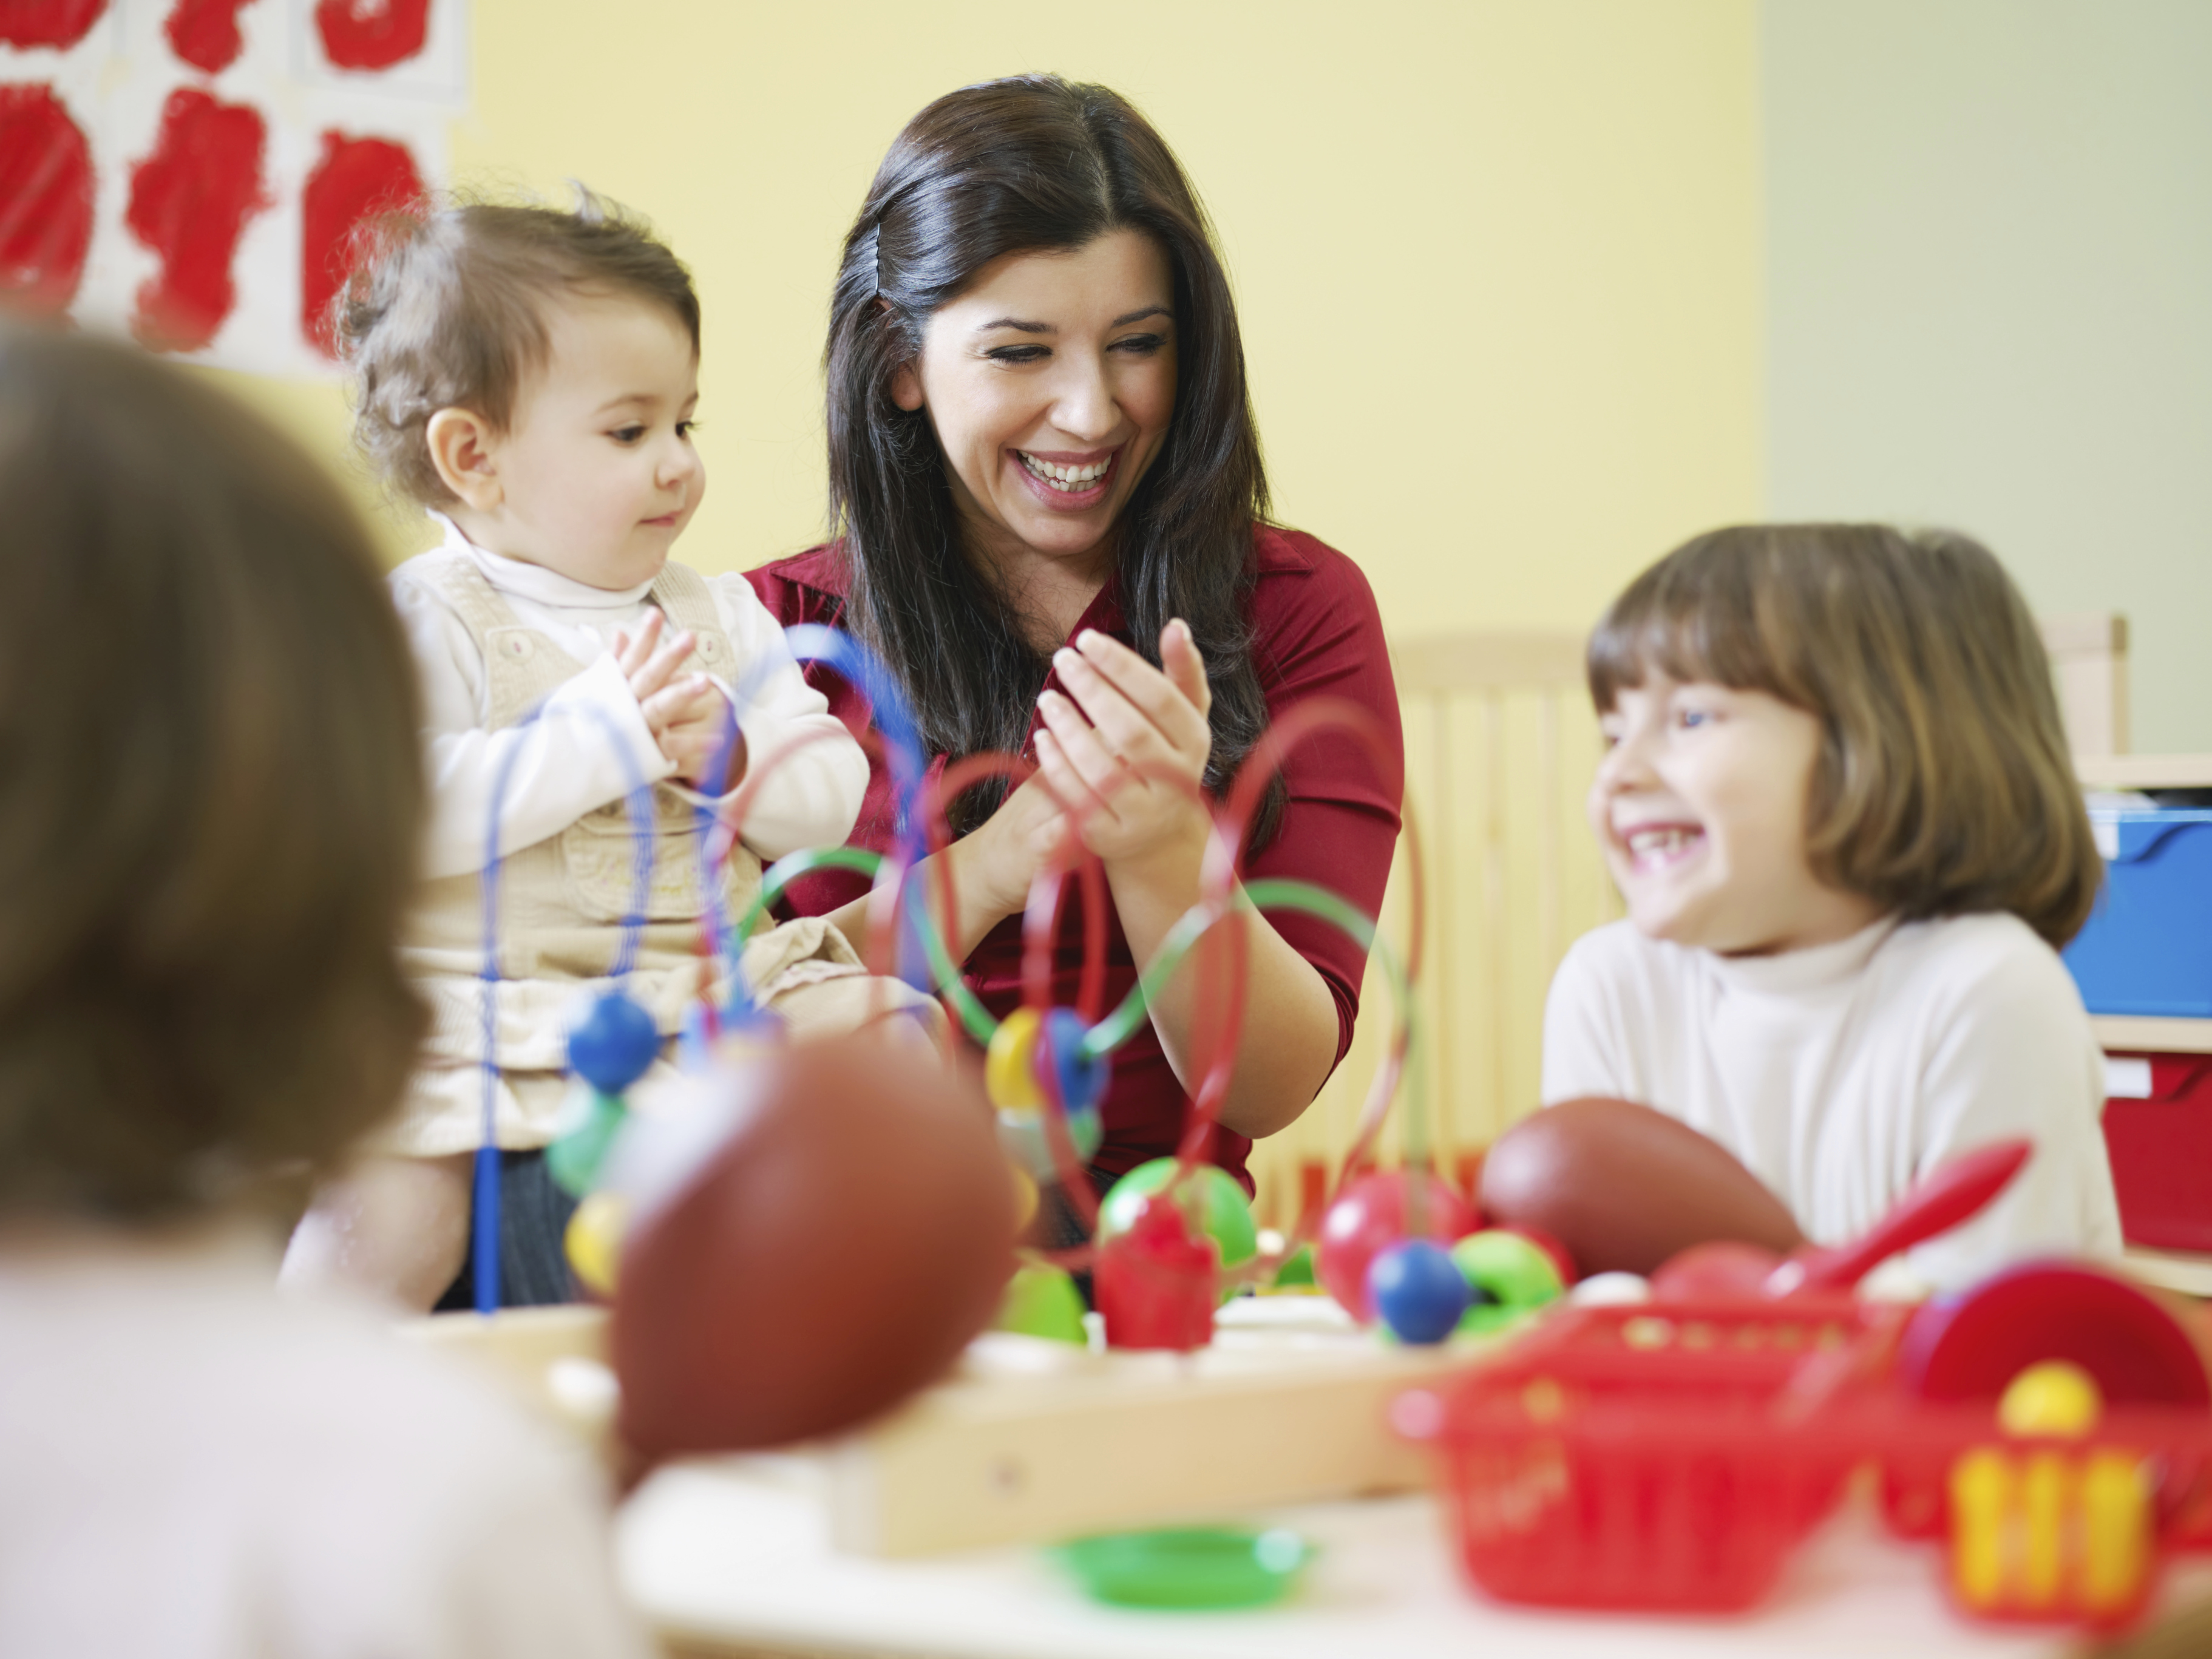 Degree Requirements For Child Care Workers May Improve